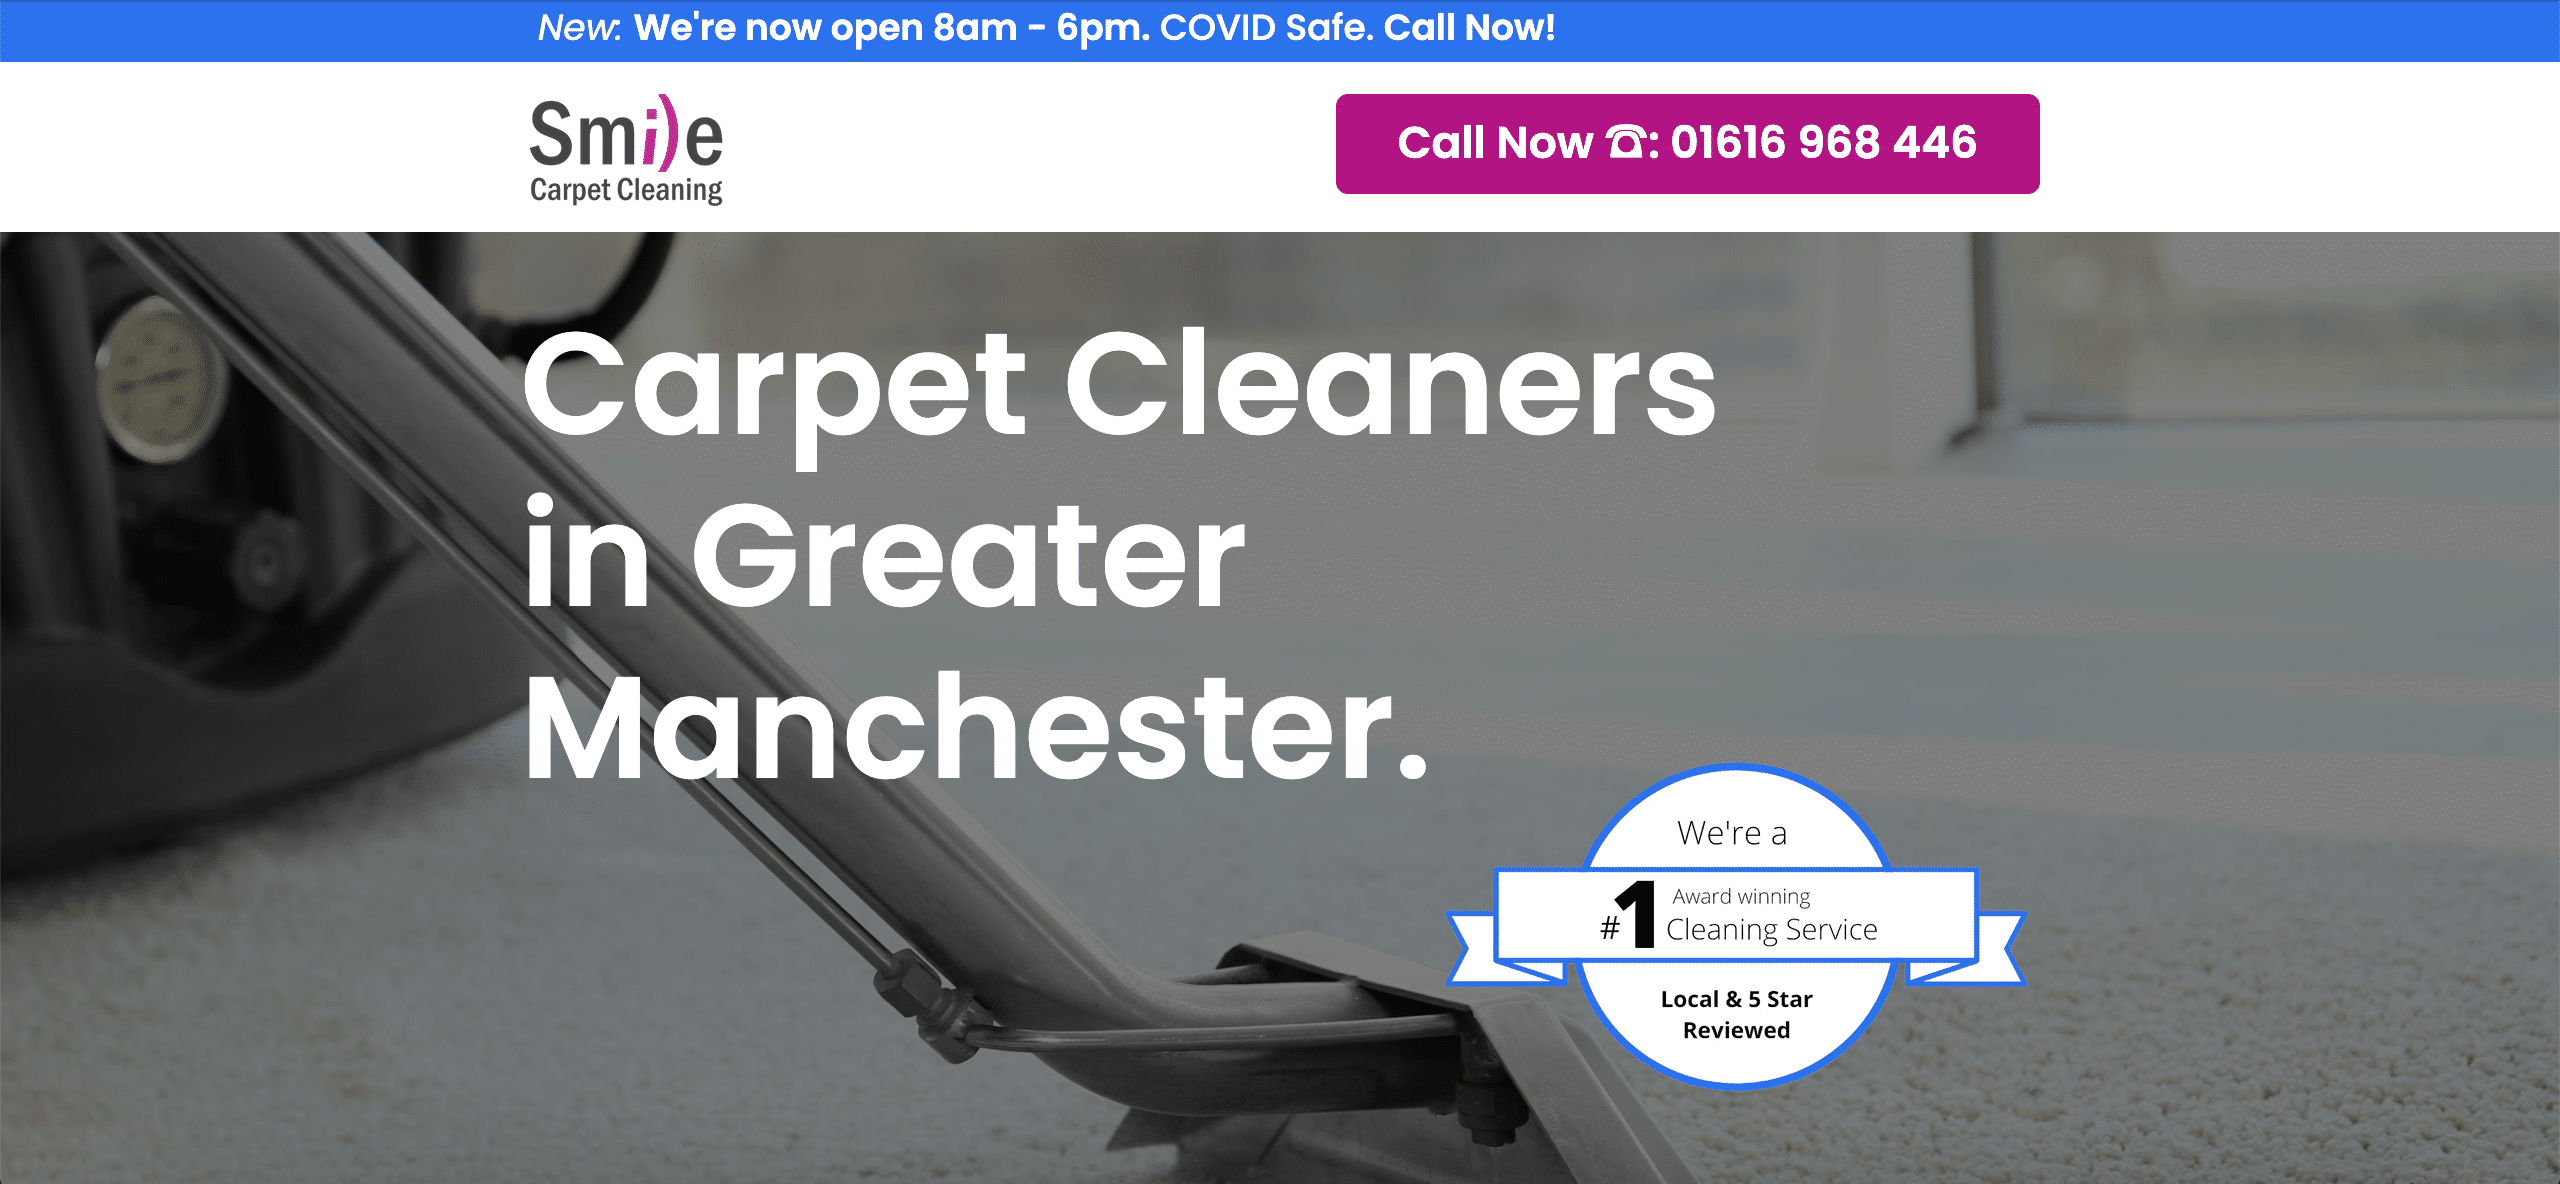 """""""Carpet Cleaners in Greater Manchester""""."""